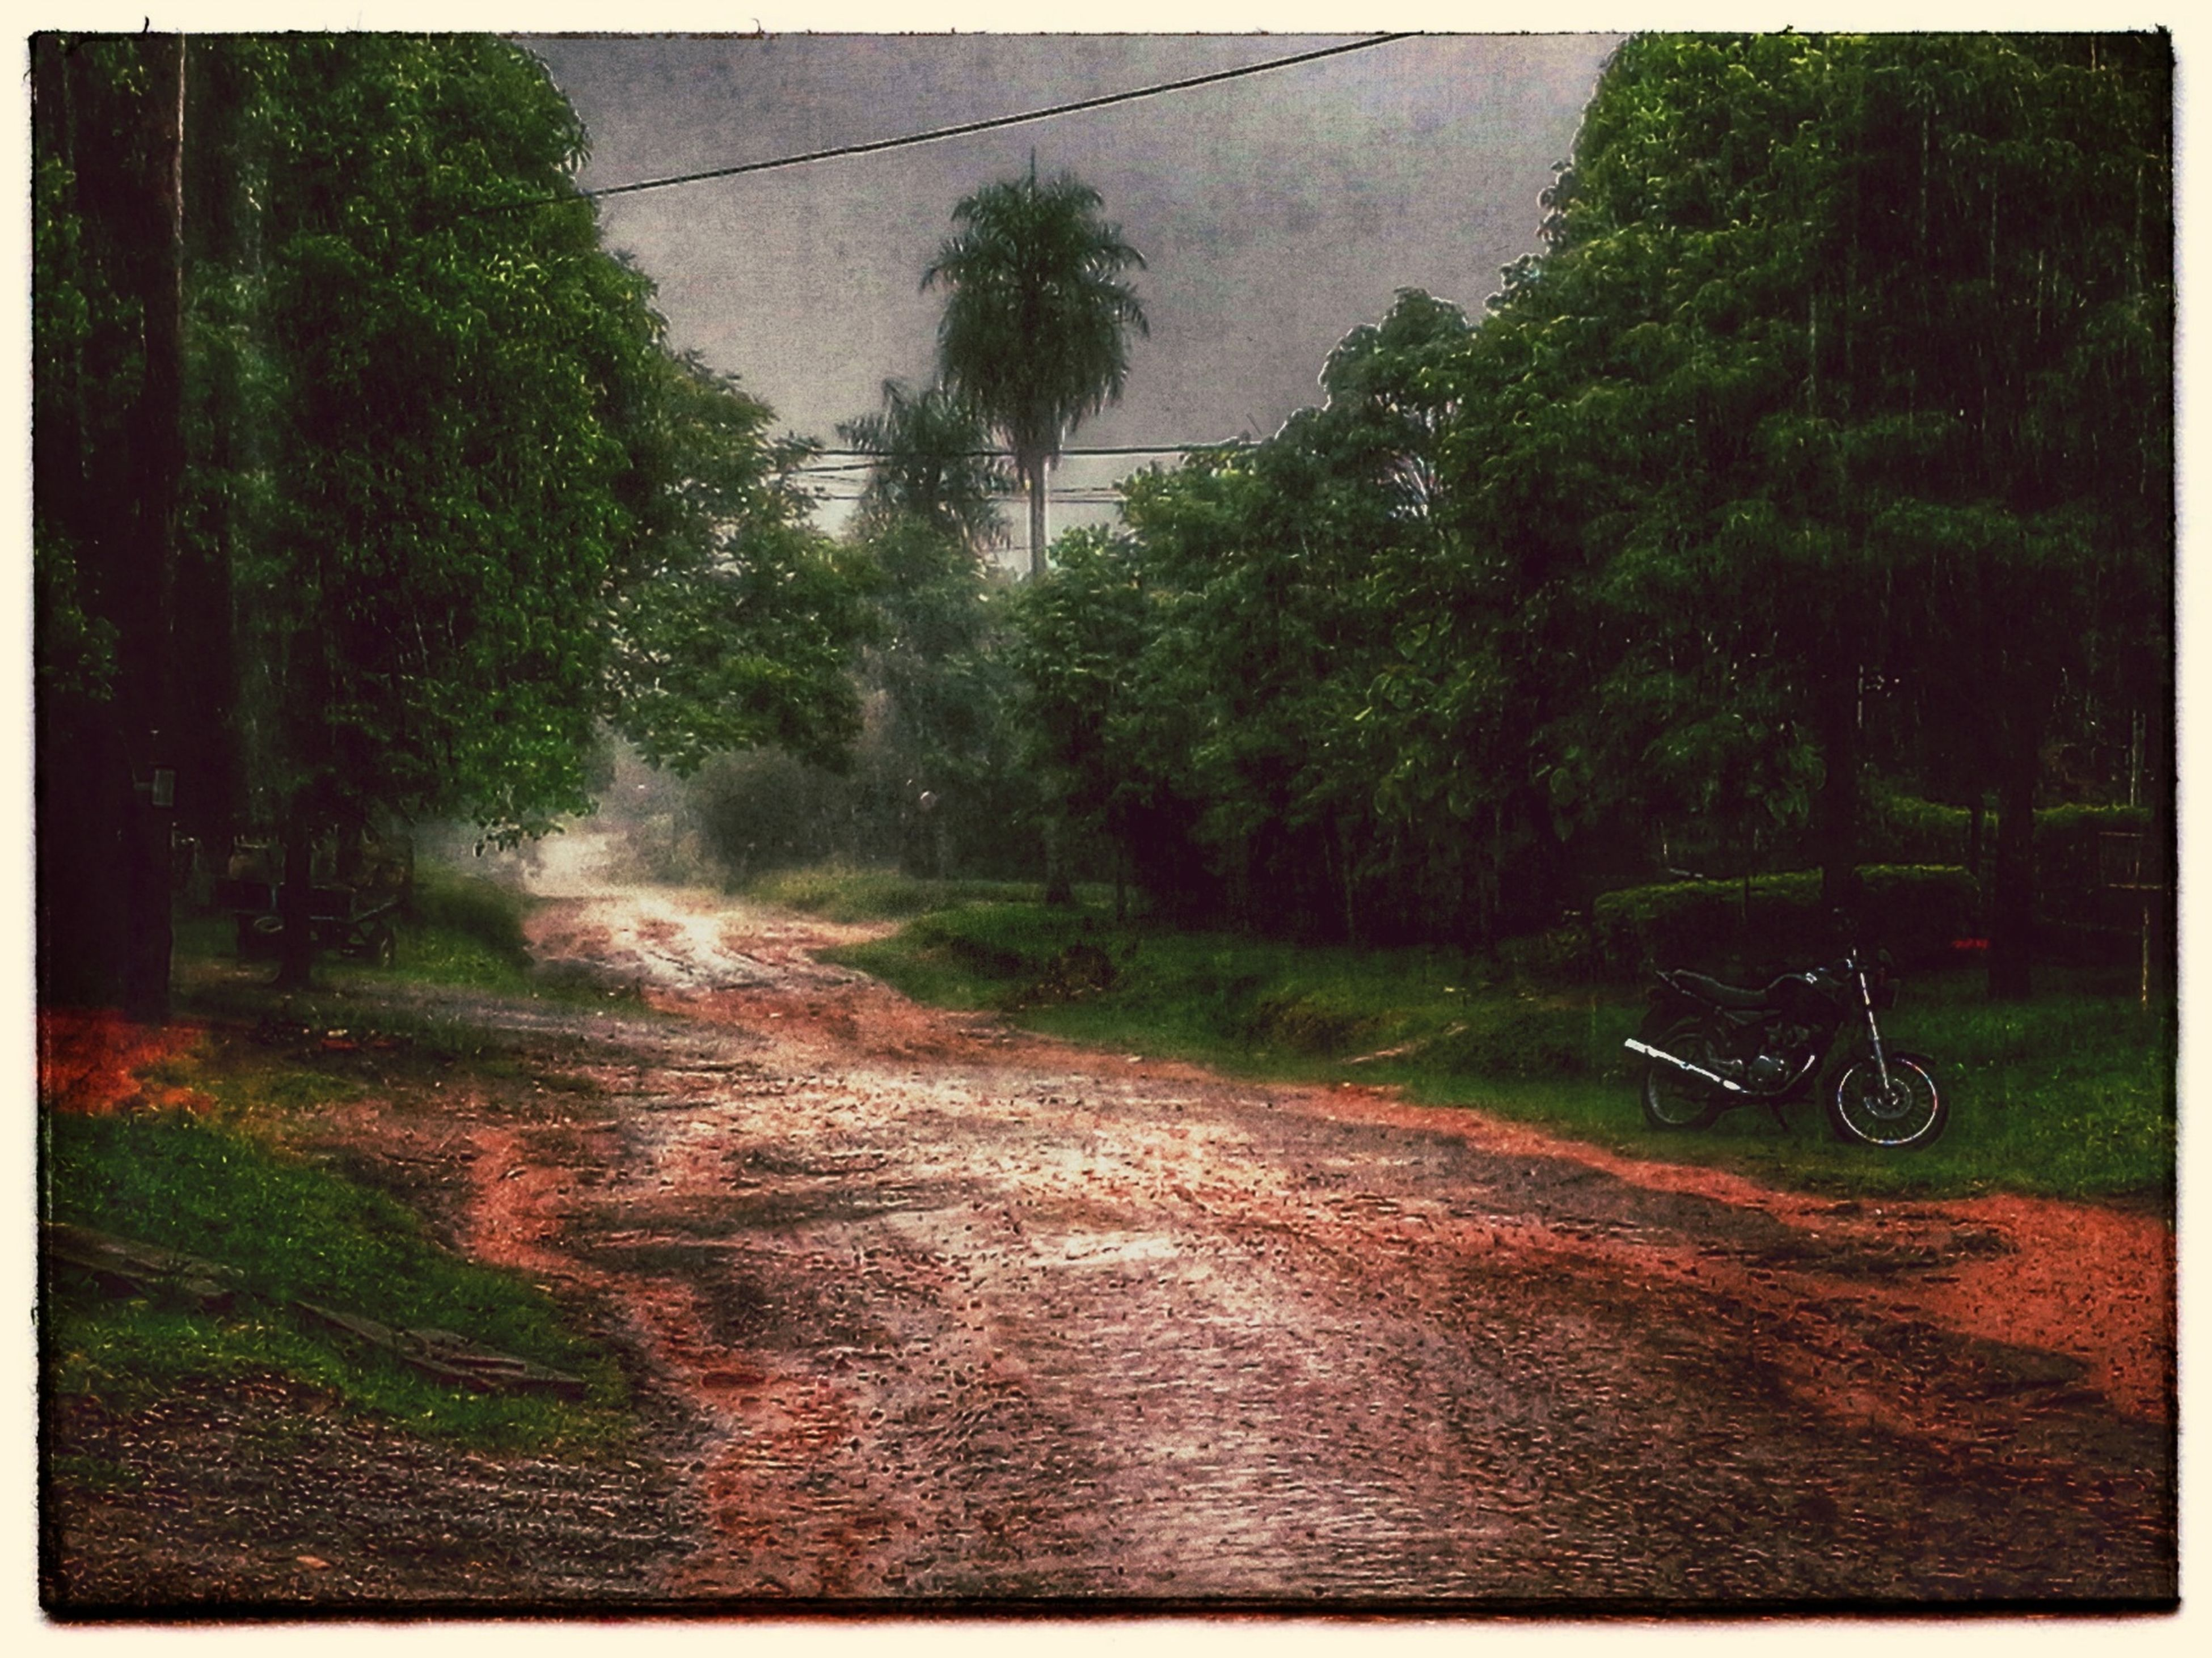 tree, the way forward, transfer print, auto post production filter, diminishing perspective, dirt road, road, transportation, tranquility, forest, nature, vanishing point, tranquil scene, growth, country road, outdoors, landscape, no people, empty road, beauty in nature